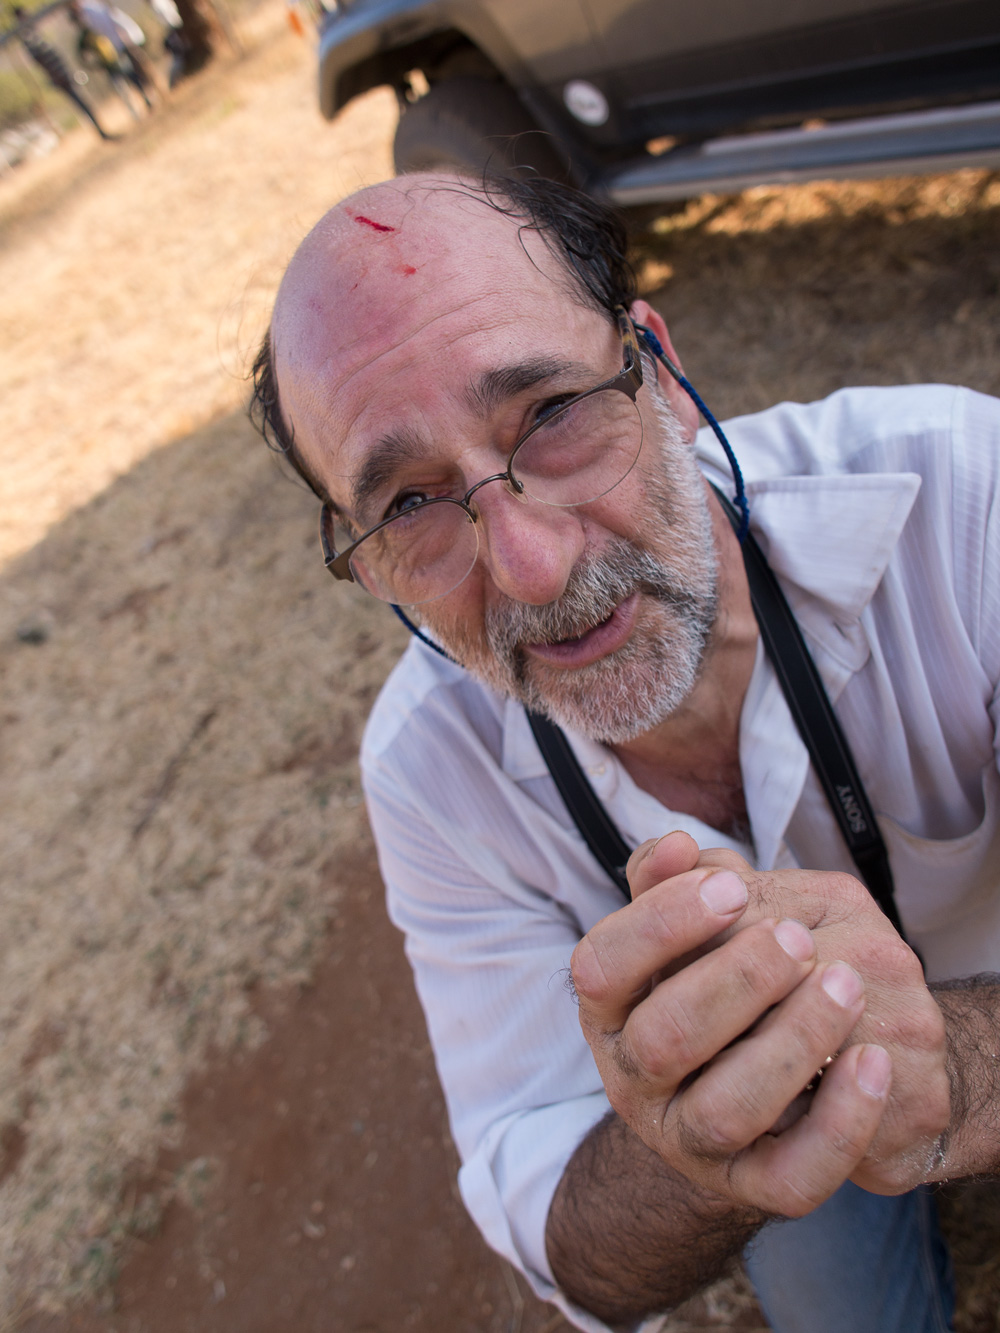 Dana Schorr, bleeding head liberal. Click on the image for a larger view. Author's photo, Longido, Tanzania, 2013